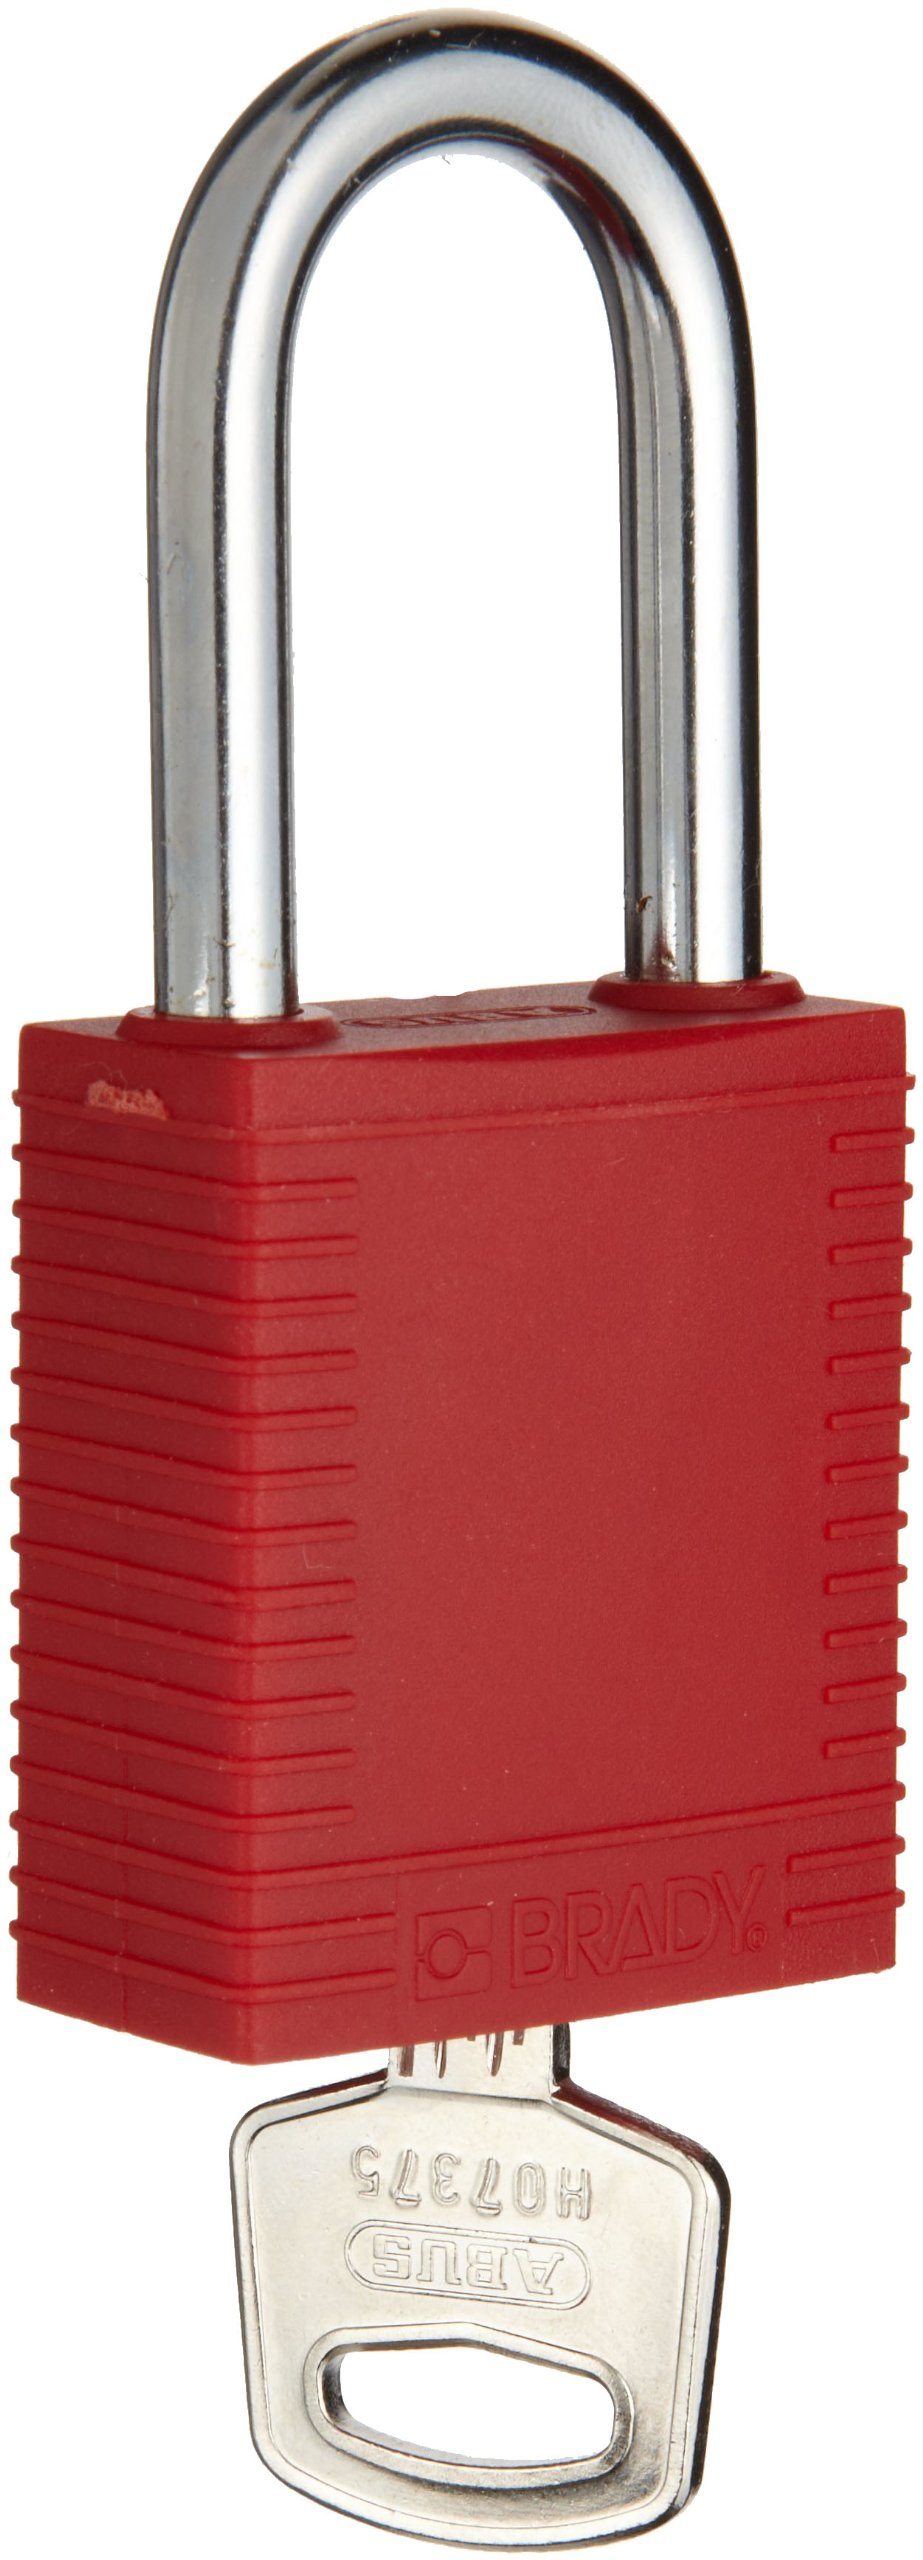 Brady Plastic Lockout/Tagout Padlock, Keyed Alike, 1-3/4'' Body Length, 1-1/2'' Shackle Clearance, Red (Pack of 6)